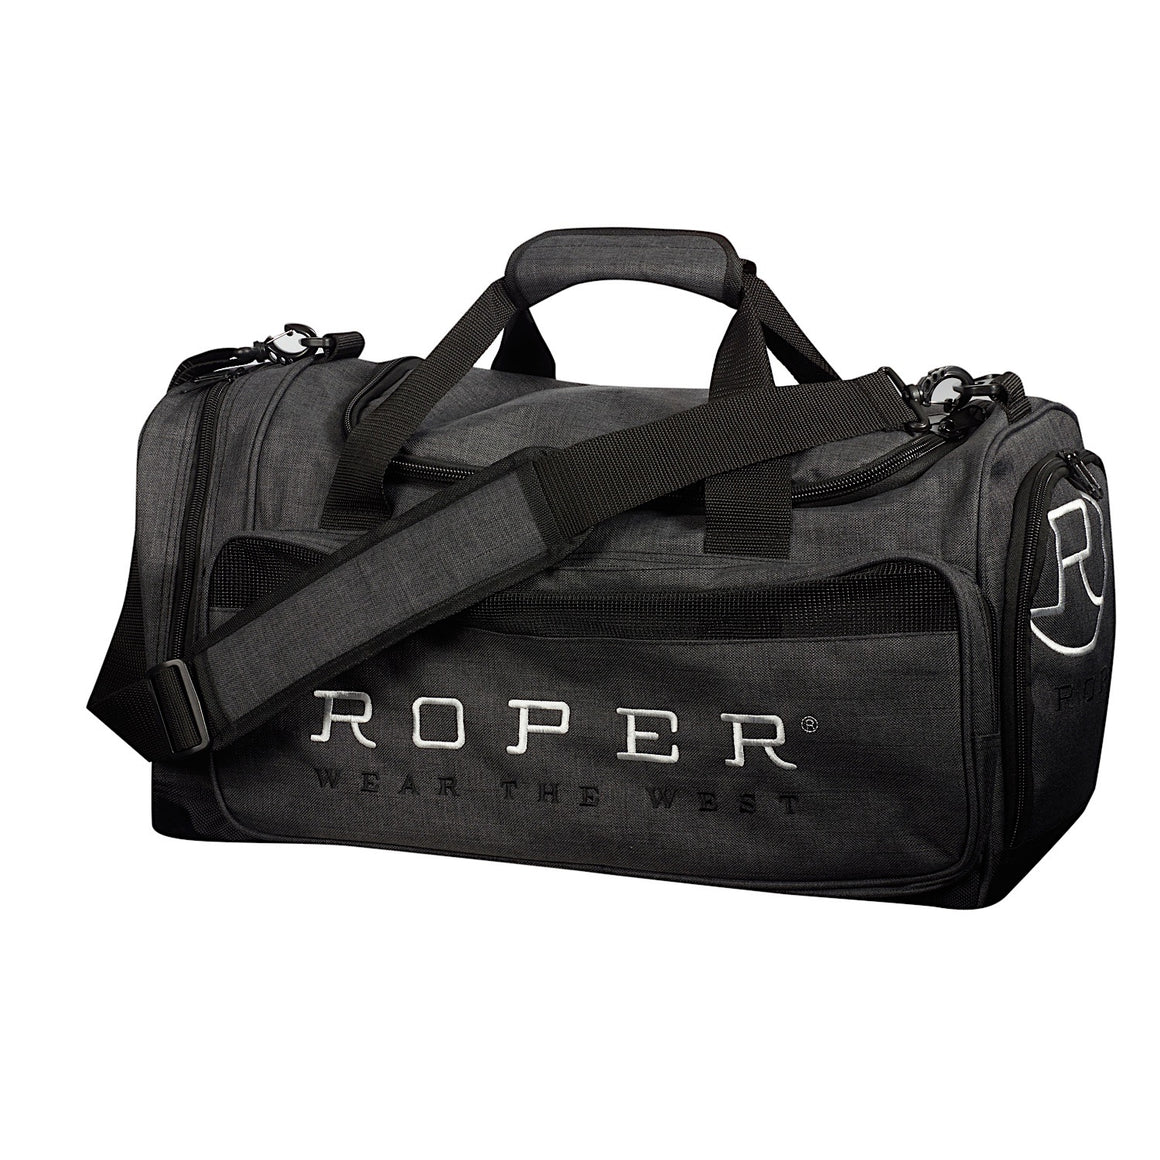 Roper Sports Duffle Gear Bag Grey 99070152